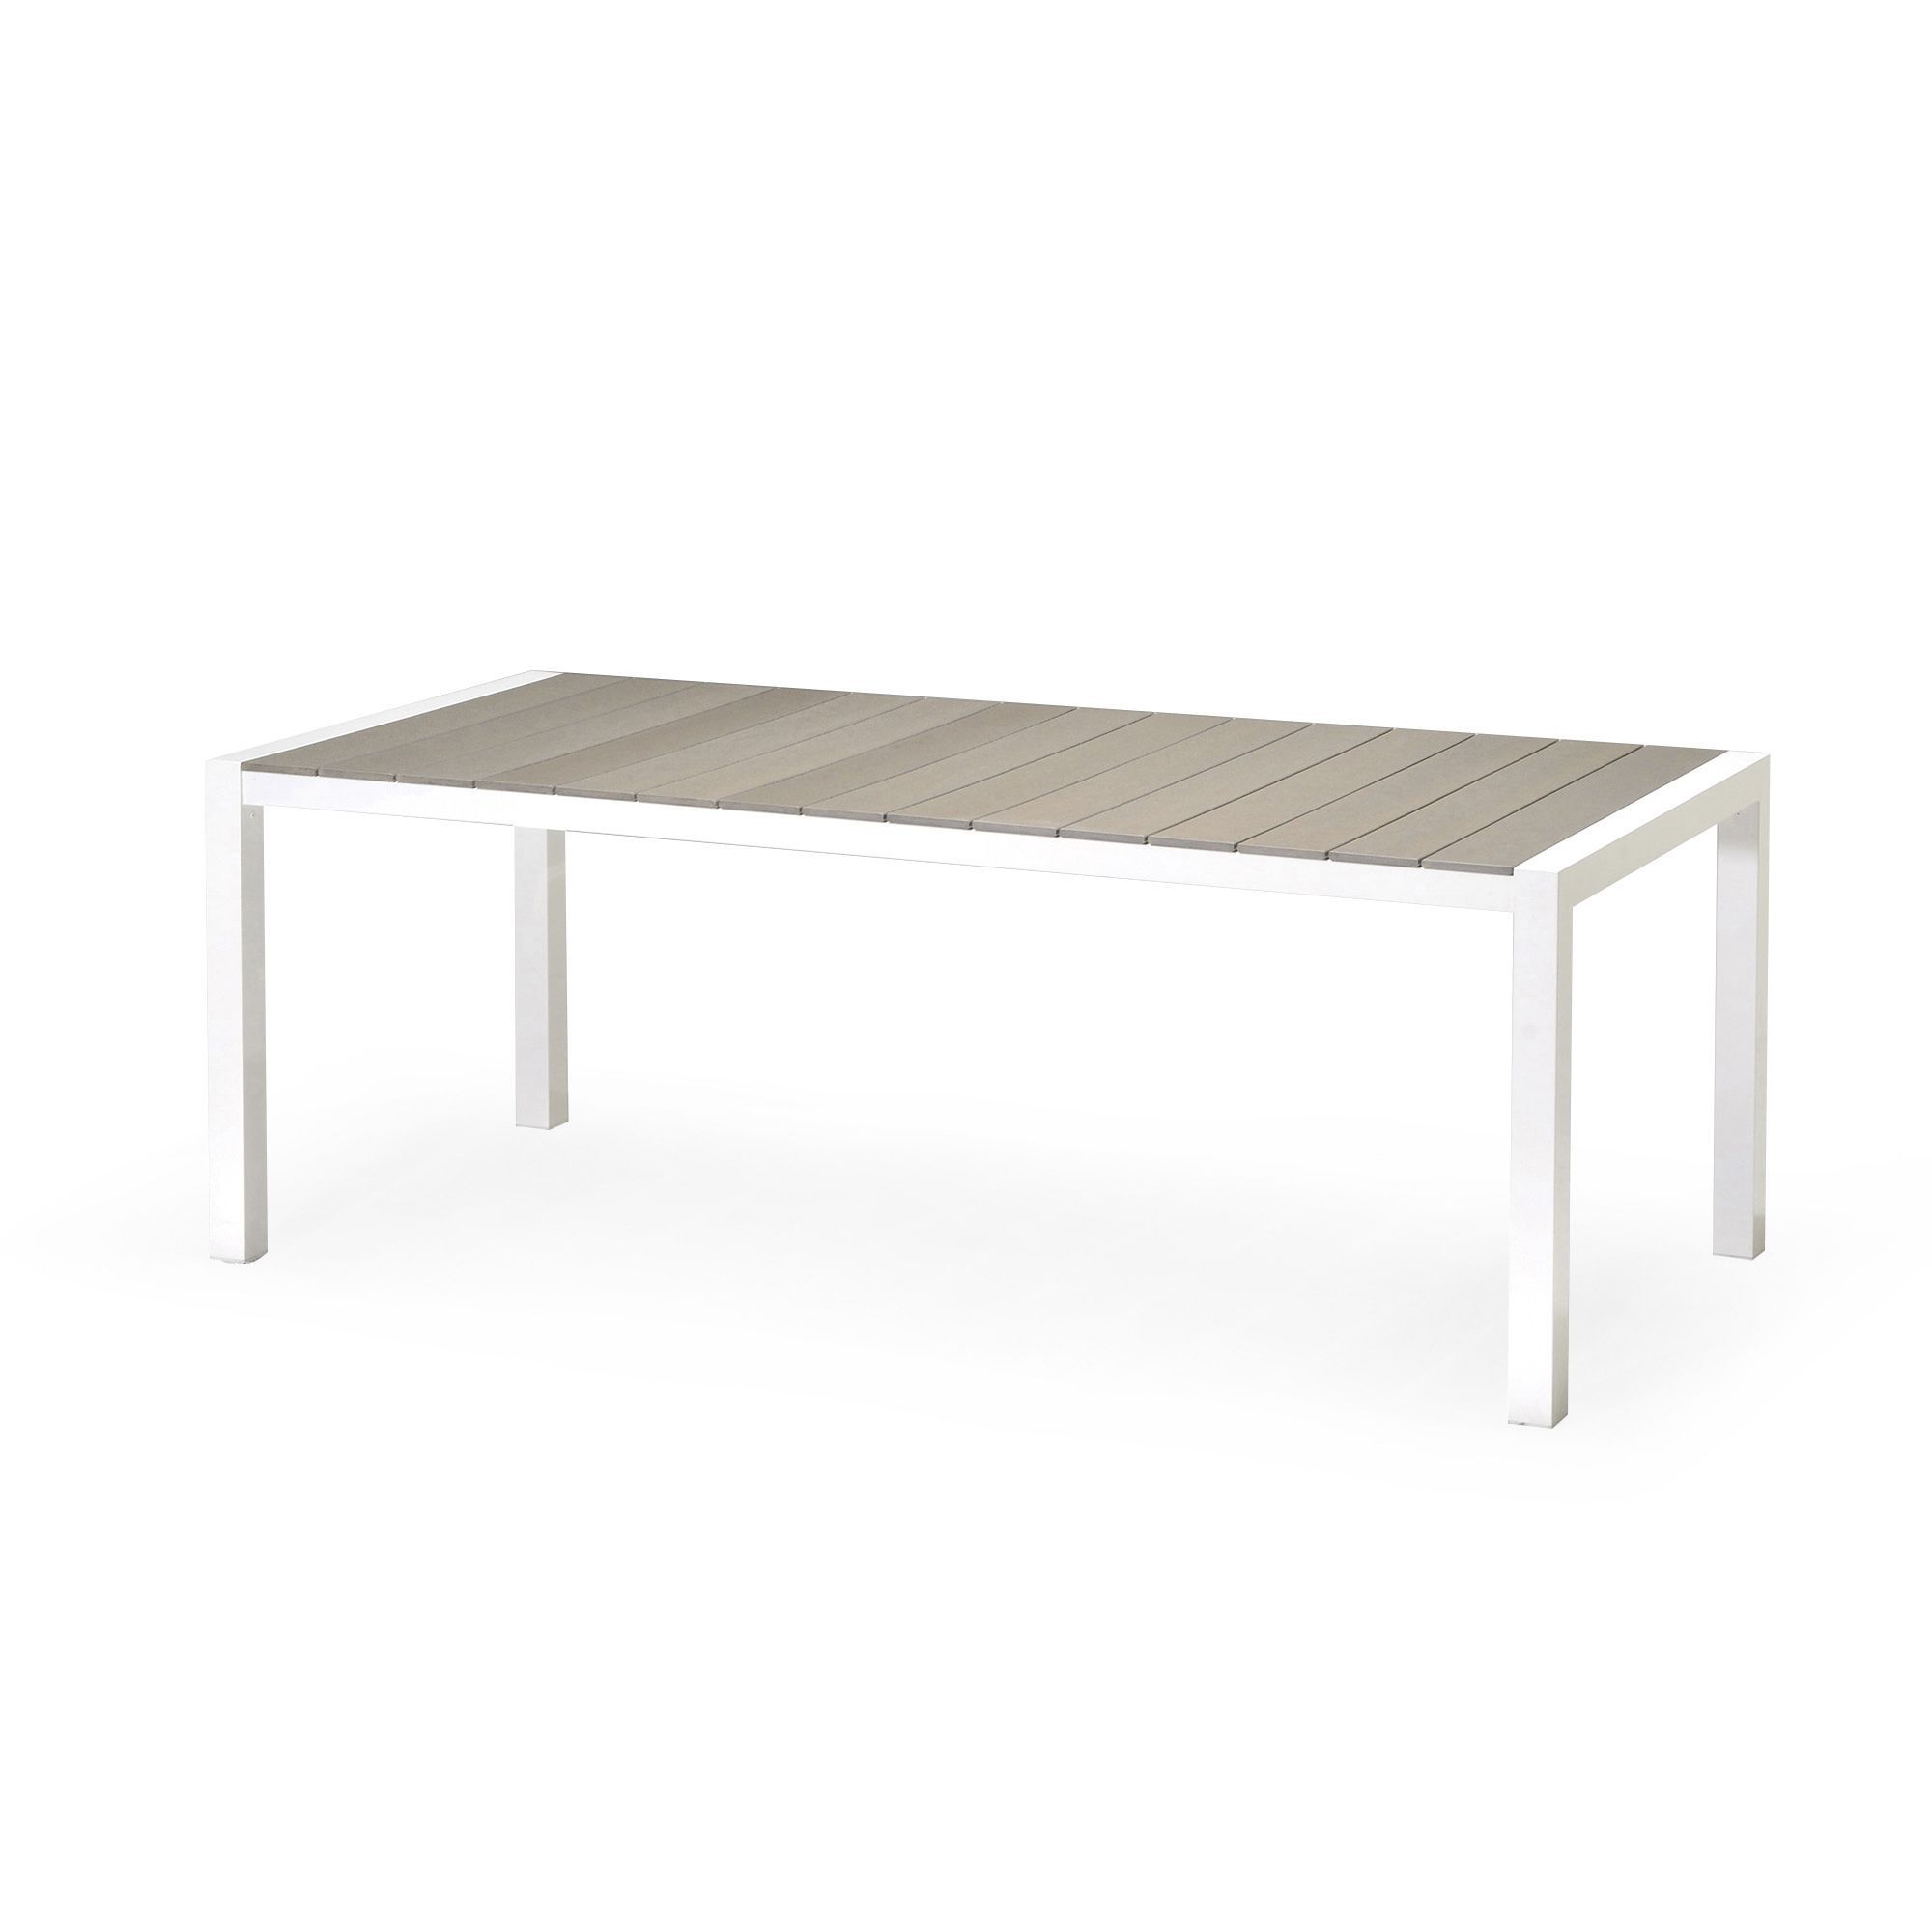 199€Table de jardin rectangulaire en Durawood® - Ferrol ...